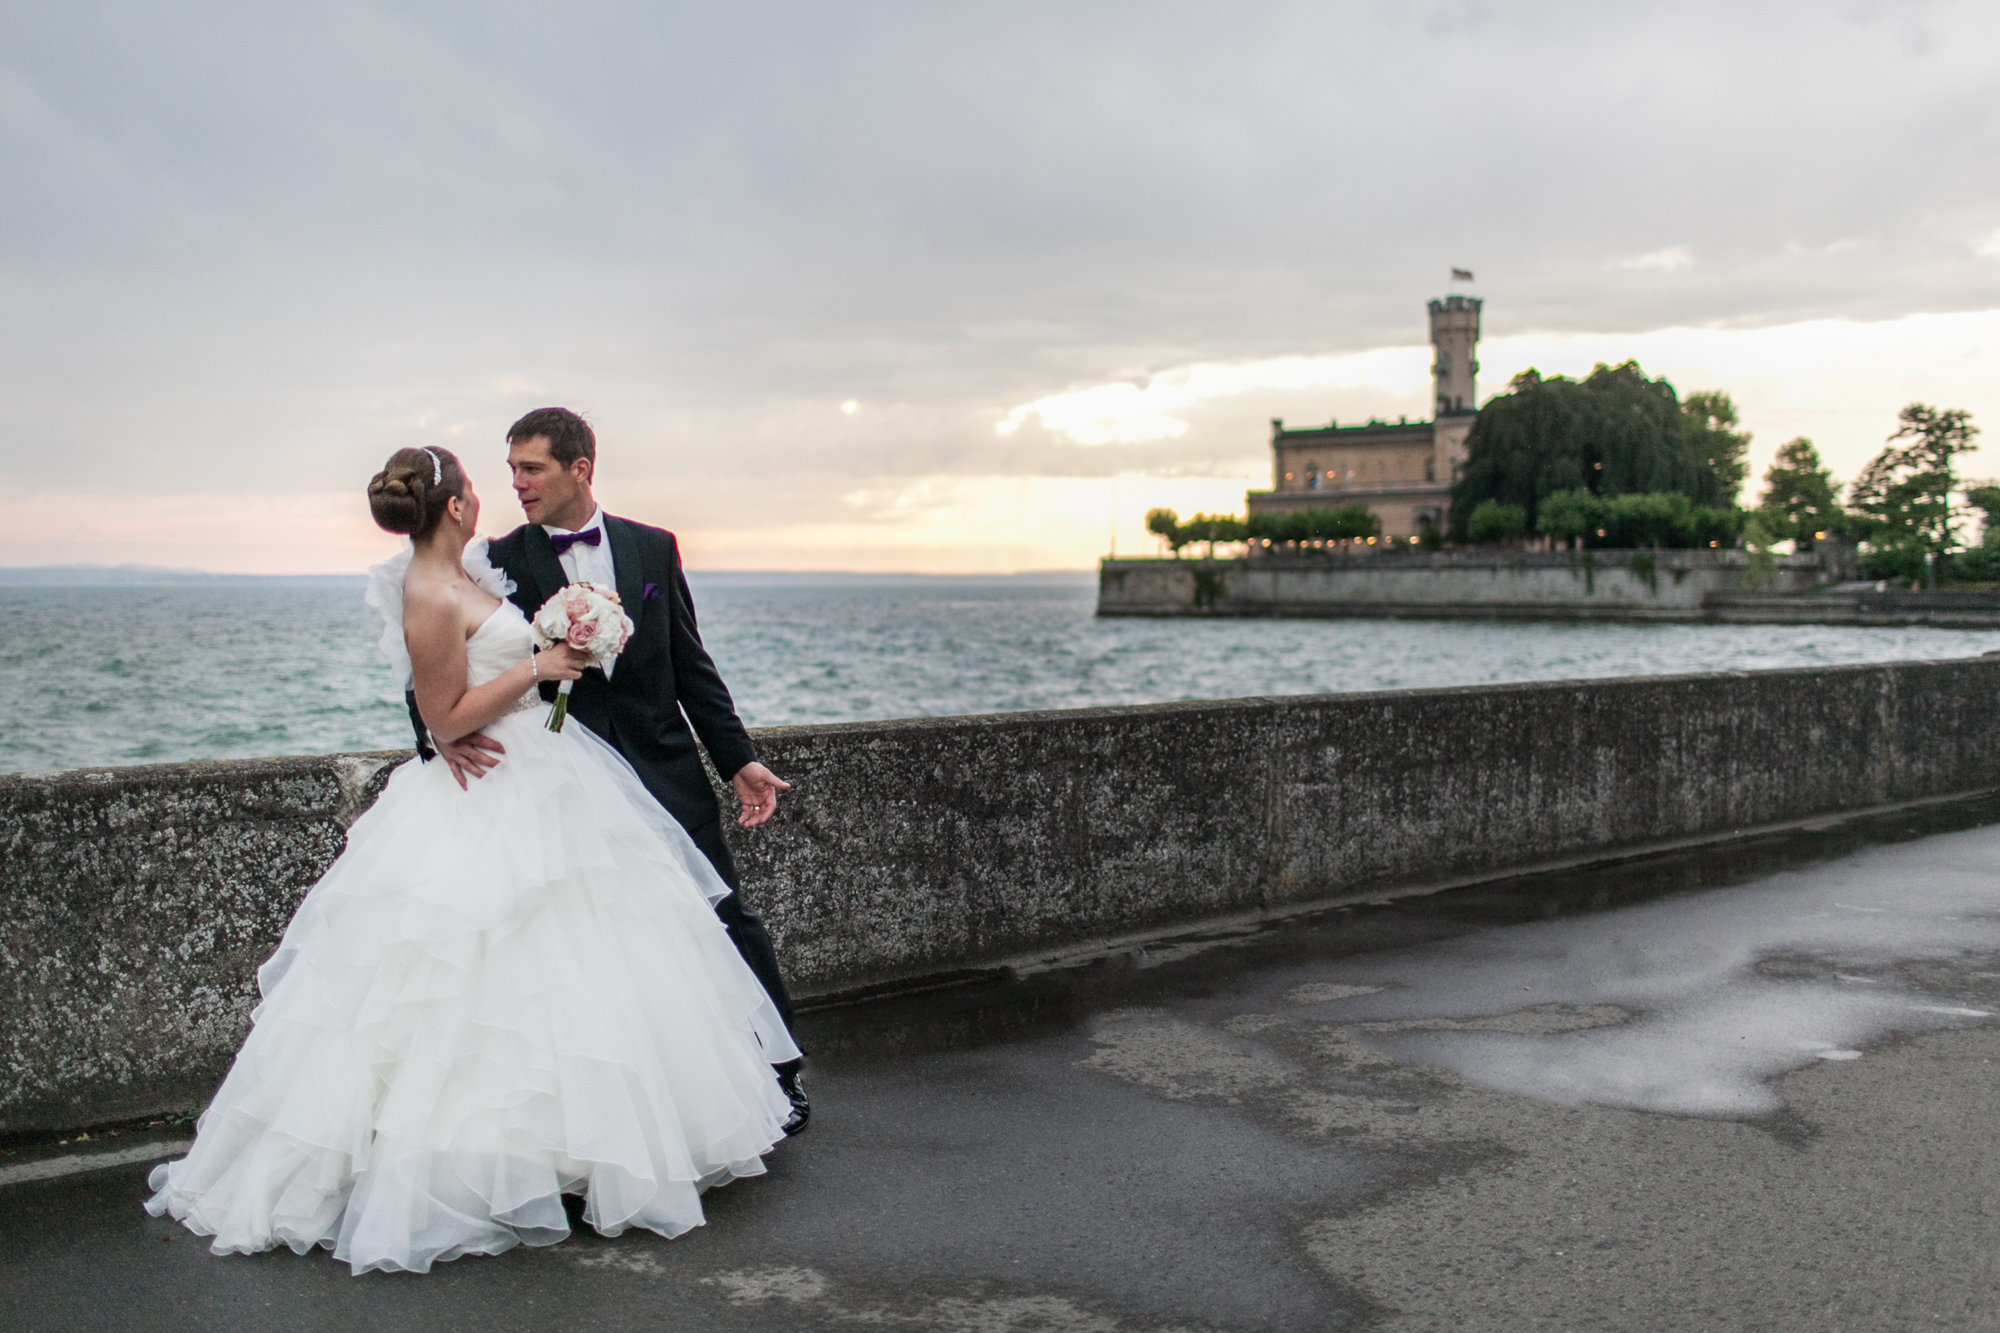 Fotograf Konstanz - Hochzeit Raphaela Phillip 083 - Wedding Story from Raphaela and Phillip at Lake of Constance  - 140 -